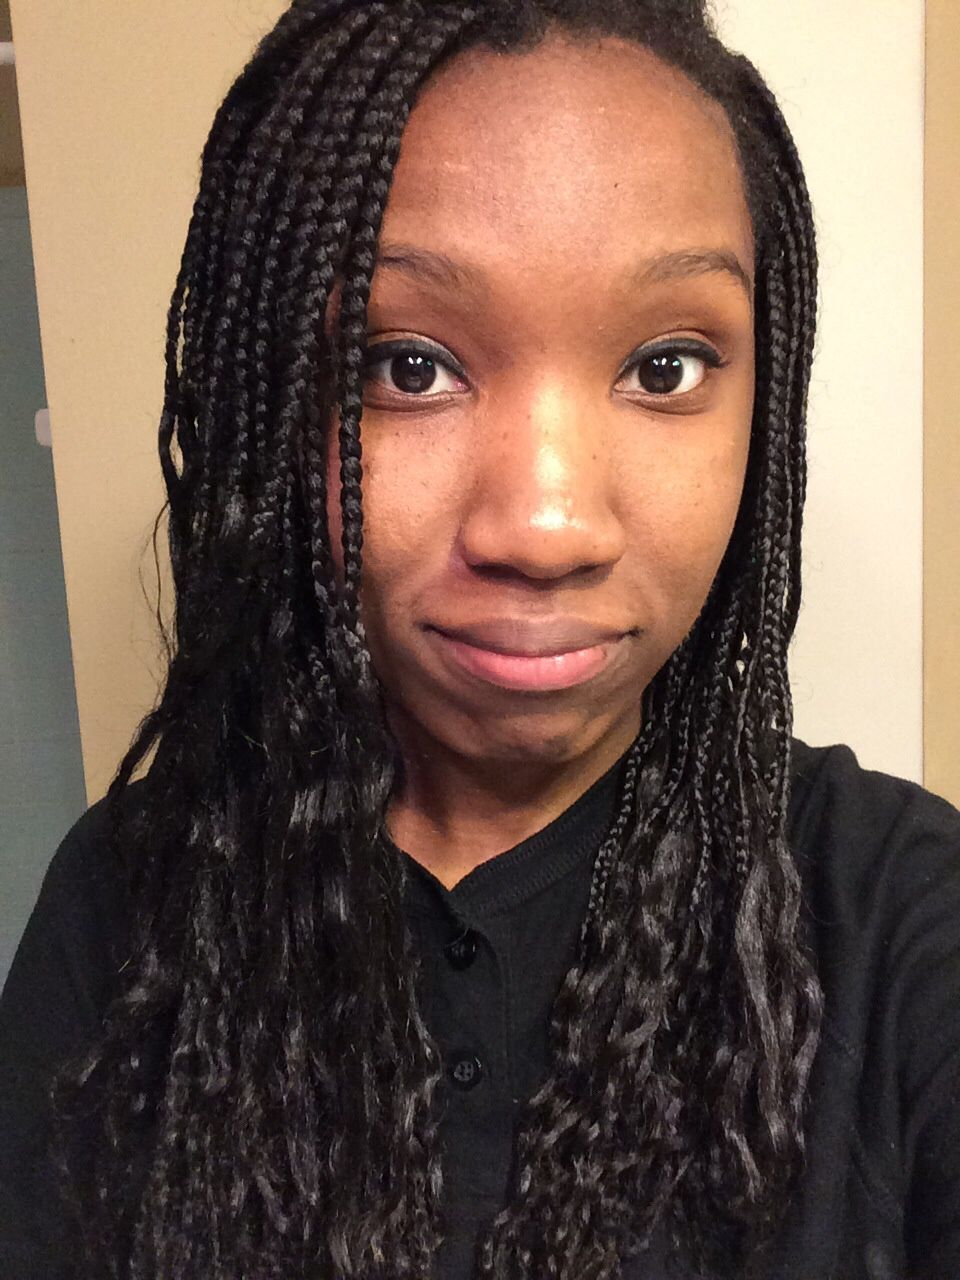 """Erica works at UPS! """"I decided to get a job at a local fast-food chain. I knew it wasn't a career, but it paid & that's all I needed. Fast forward to 2014, I was still working there but I was miserable. I was in the same position as 5 years prior. I needed a change. I came across Snagajob & applied to 7 jobs. The very next day I was interviewed by UPS & offered a job on the spot. 2 days later, I began my first day! There's nothing I can say to express how thankful I am. Thank you all so…"""